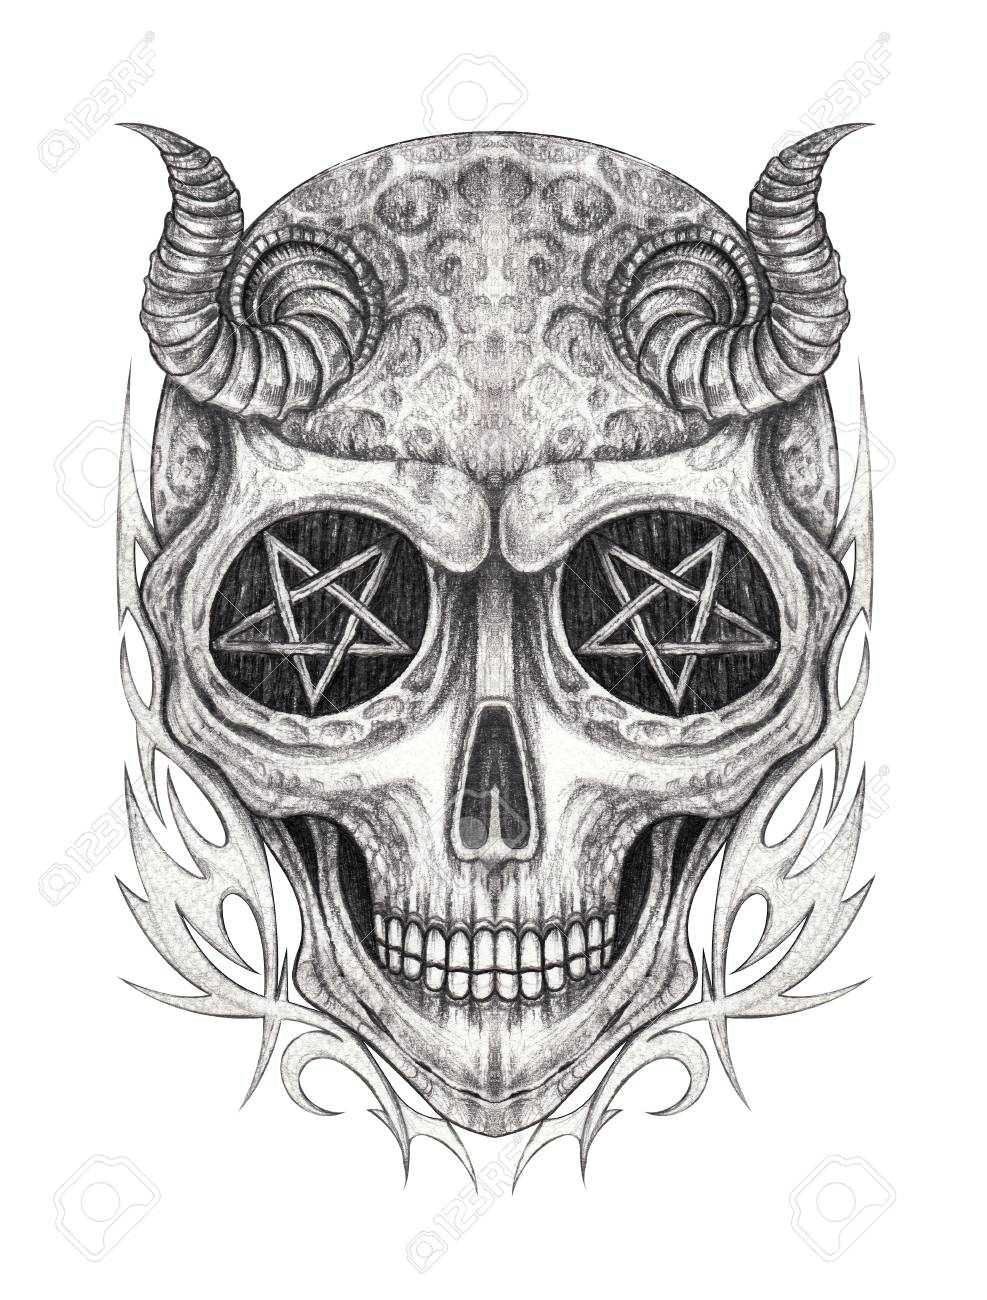 Art devil skull tattoo hand pencil drawing on paper stock photo 110774242